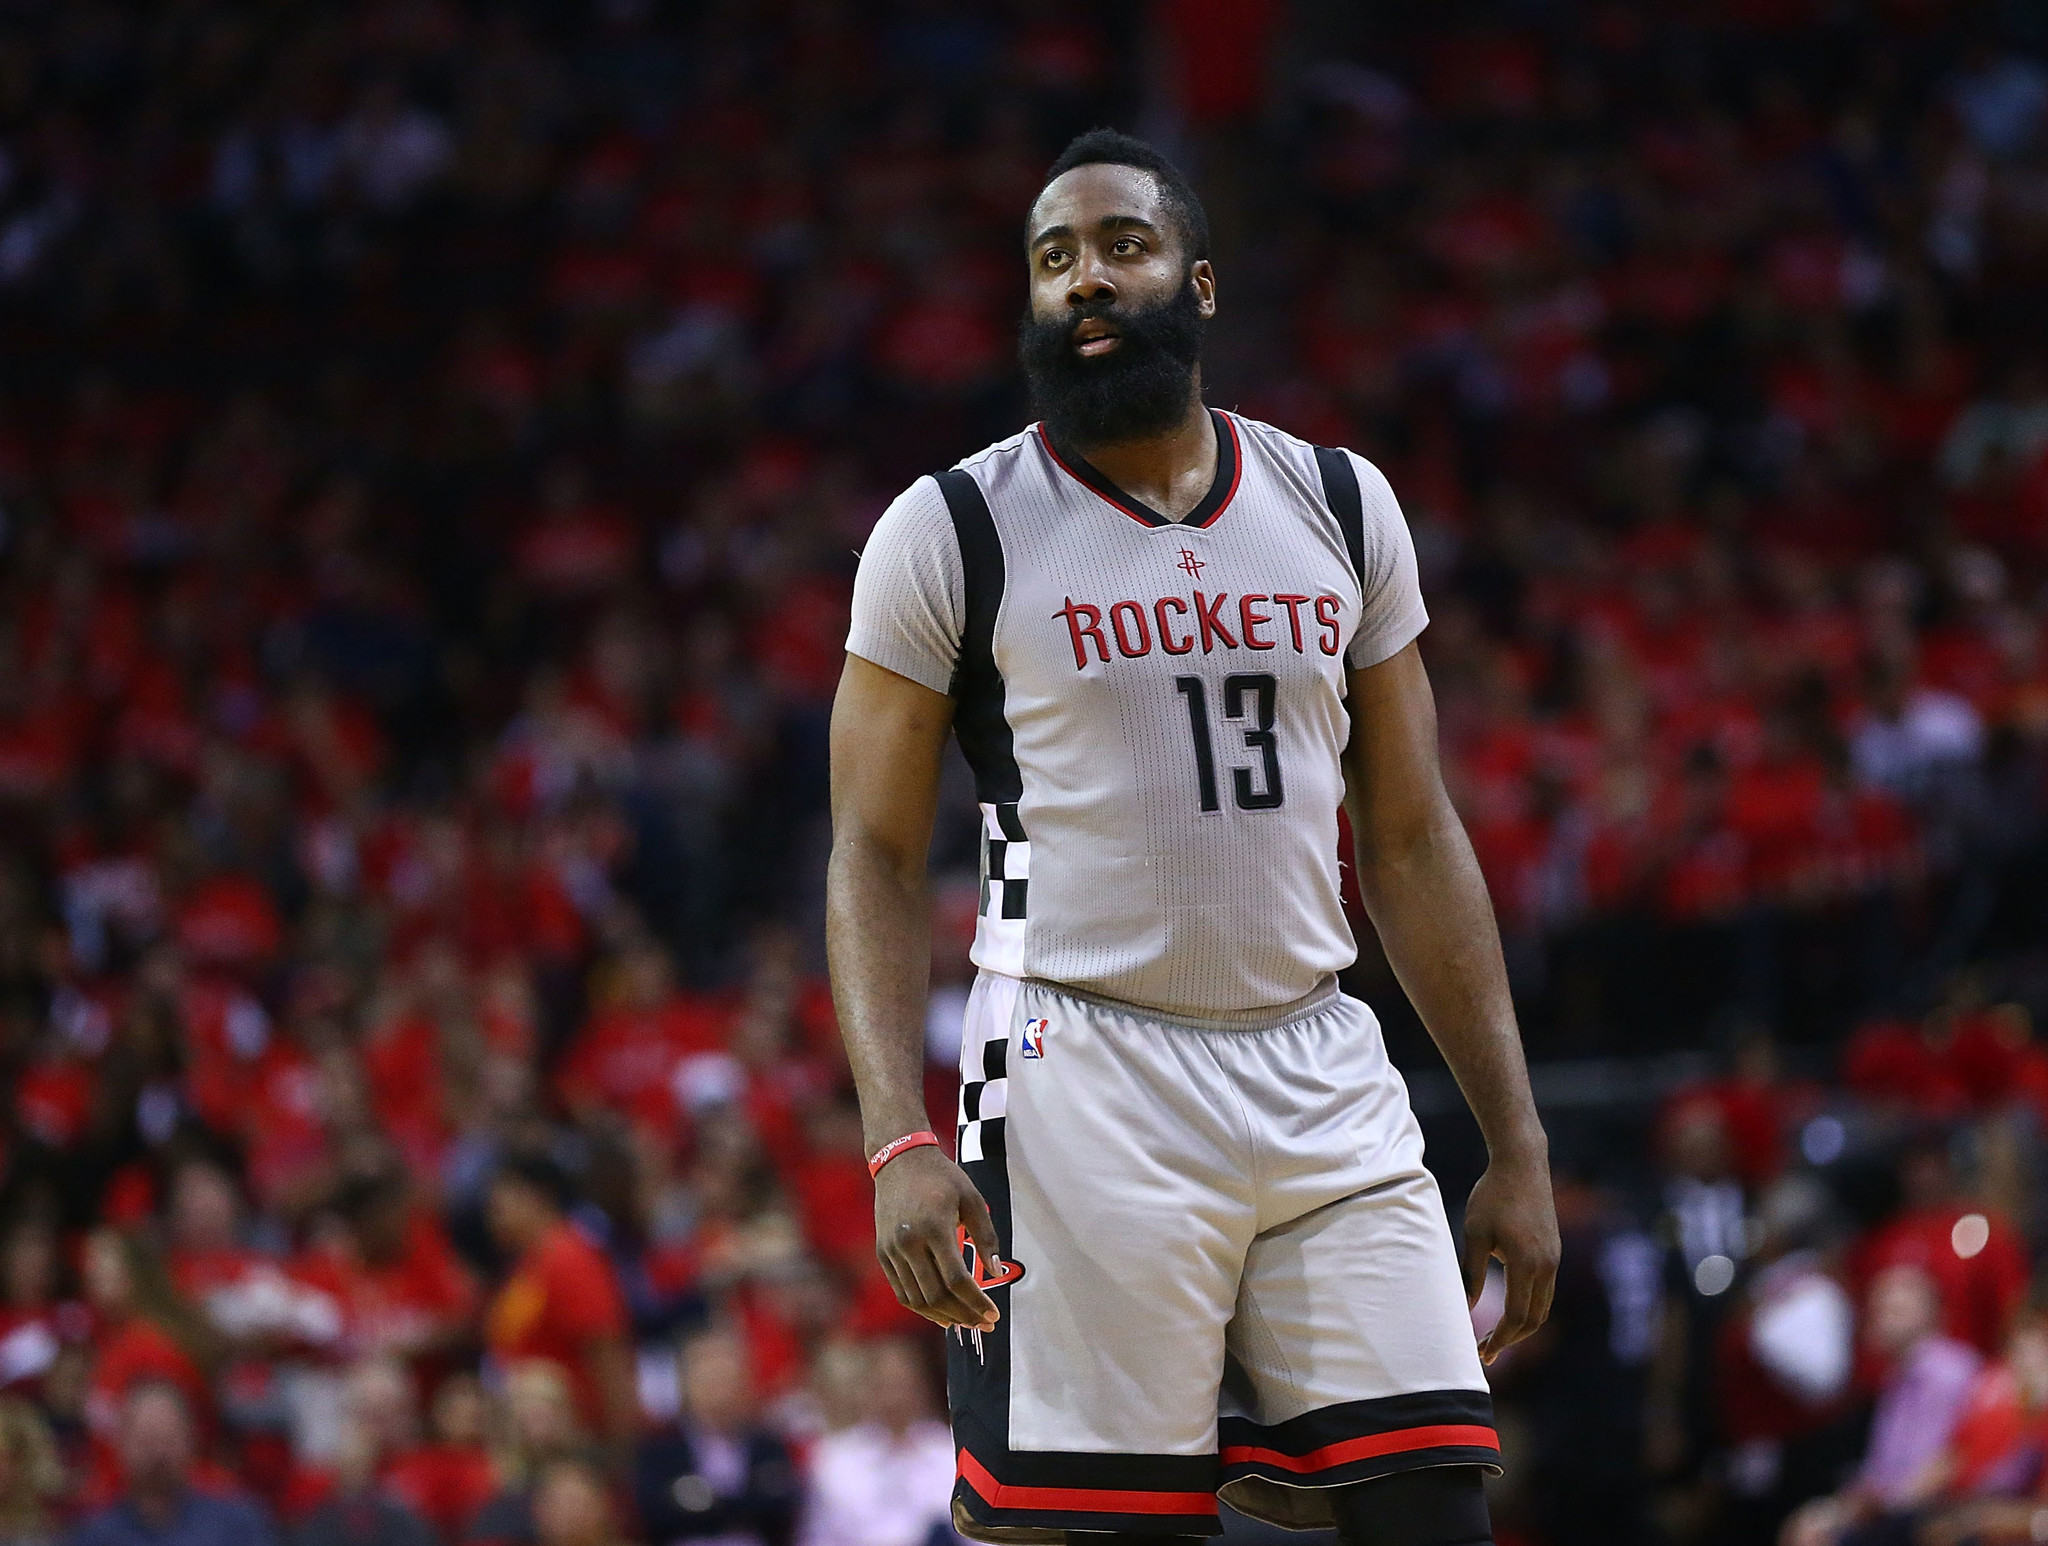 Kia MVP Ladder: At season's end, James Harden stands out above rest in MVP chase